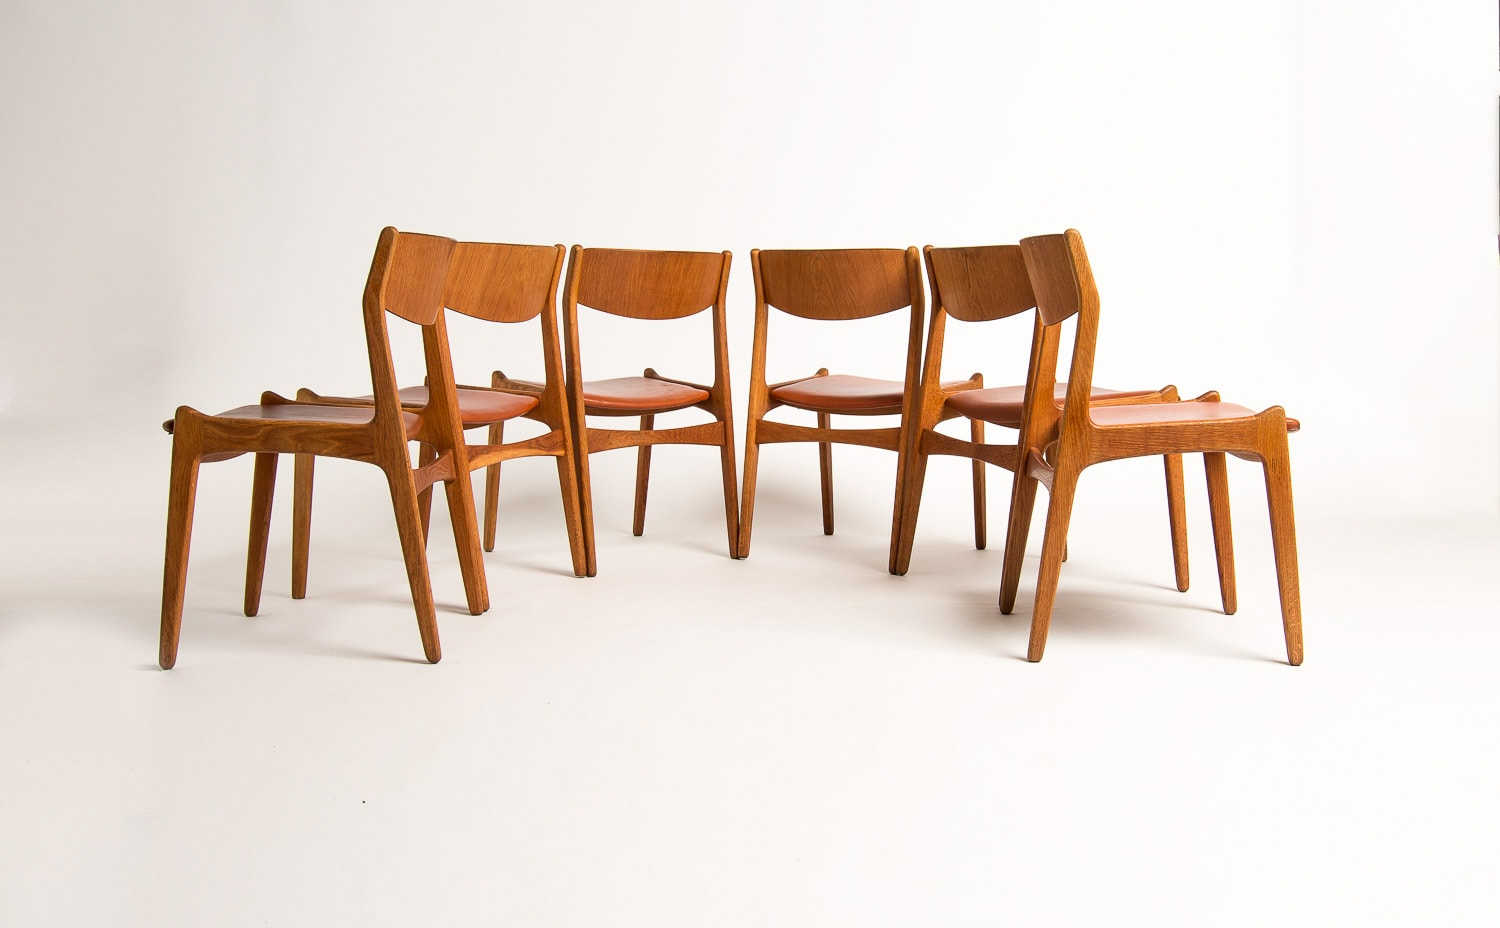 Danish Design leather dining chairs mid century modern UK